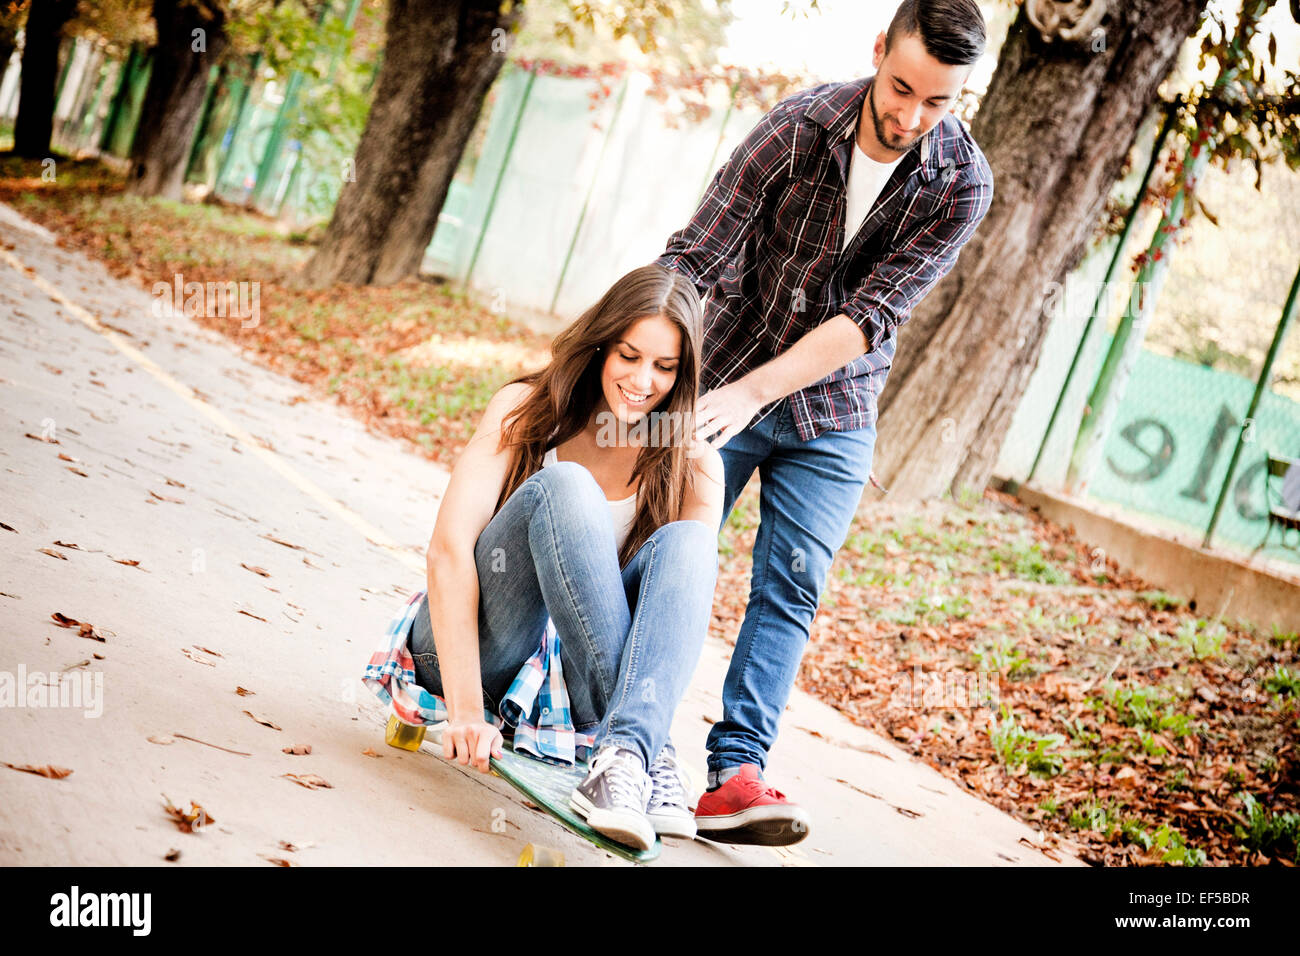 Young woman skateboarding, man supporting her - Stock Image